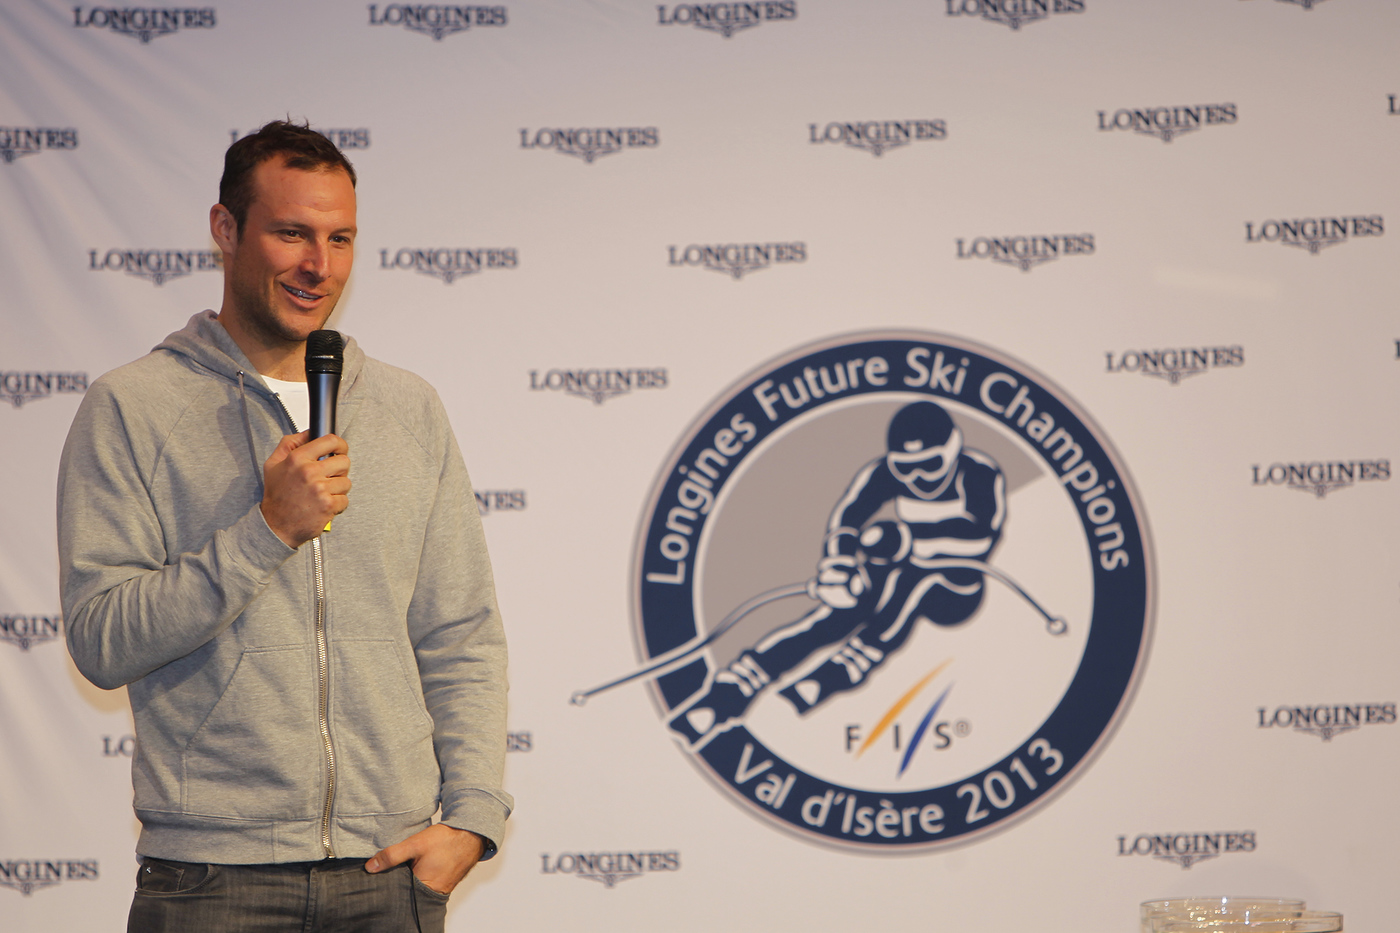 Longines Alpine Skiing Event: The Longines Future Ski Champion 2013 13